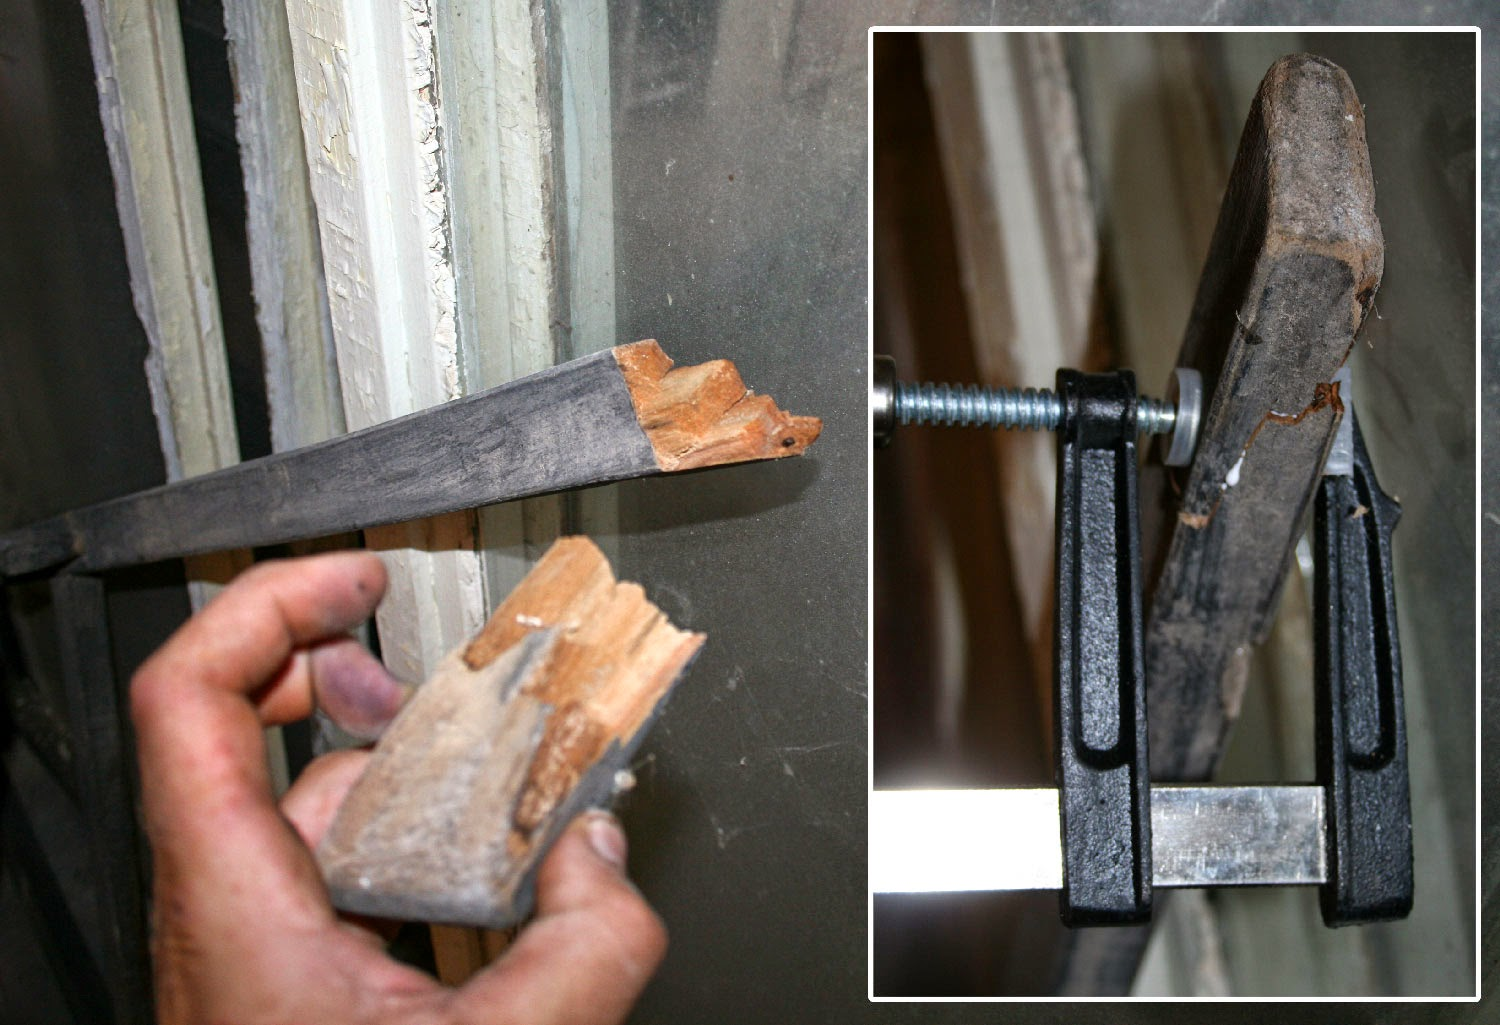 Wood glue and clamps